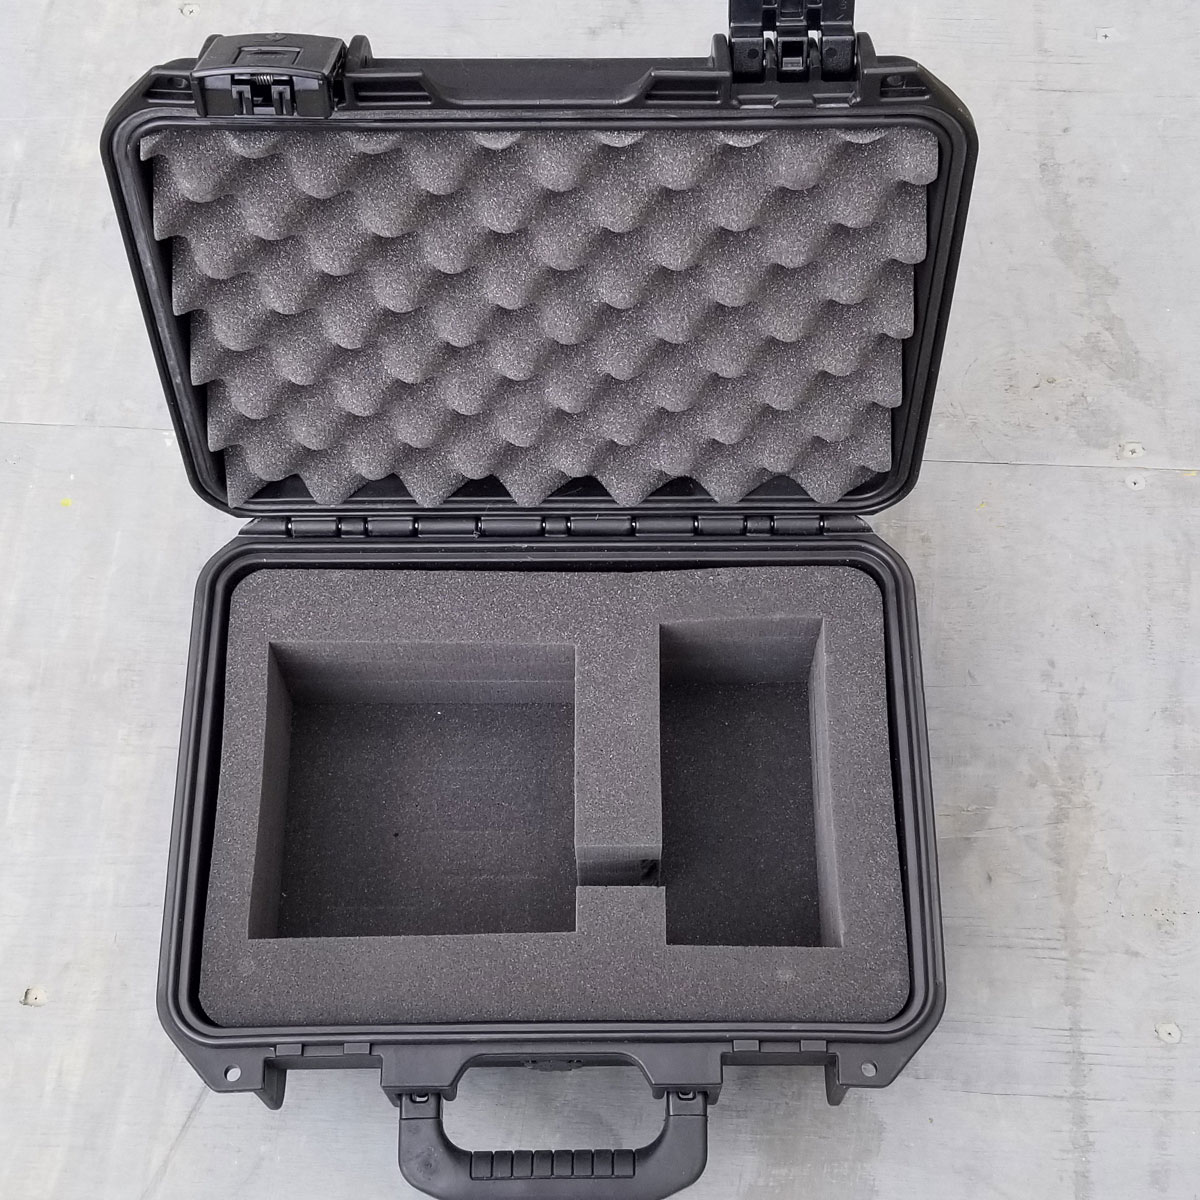 SHIPPING AND STORAGE CONTAINER Pelican/Hardigg Storm case IM